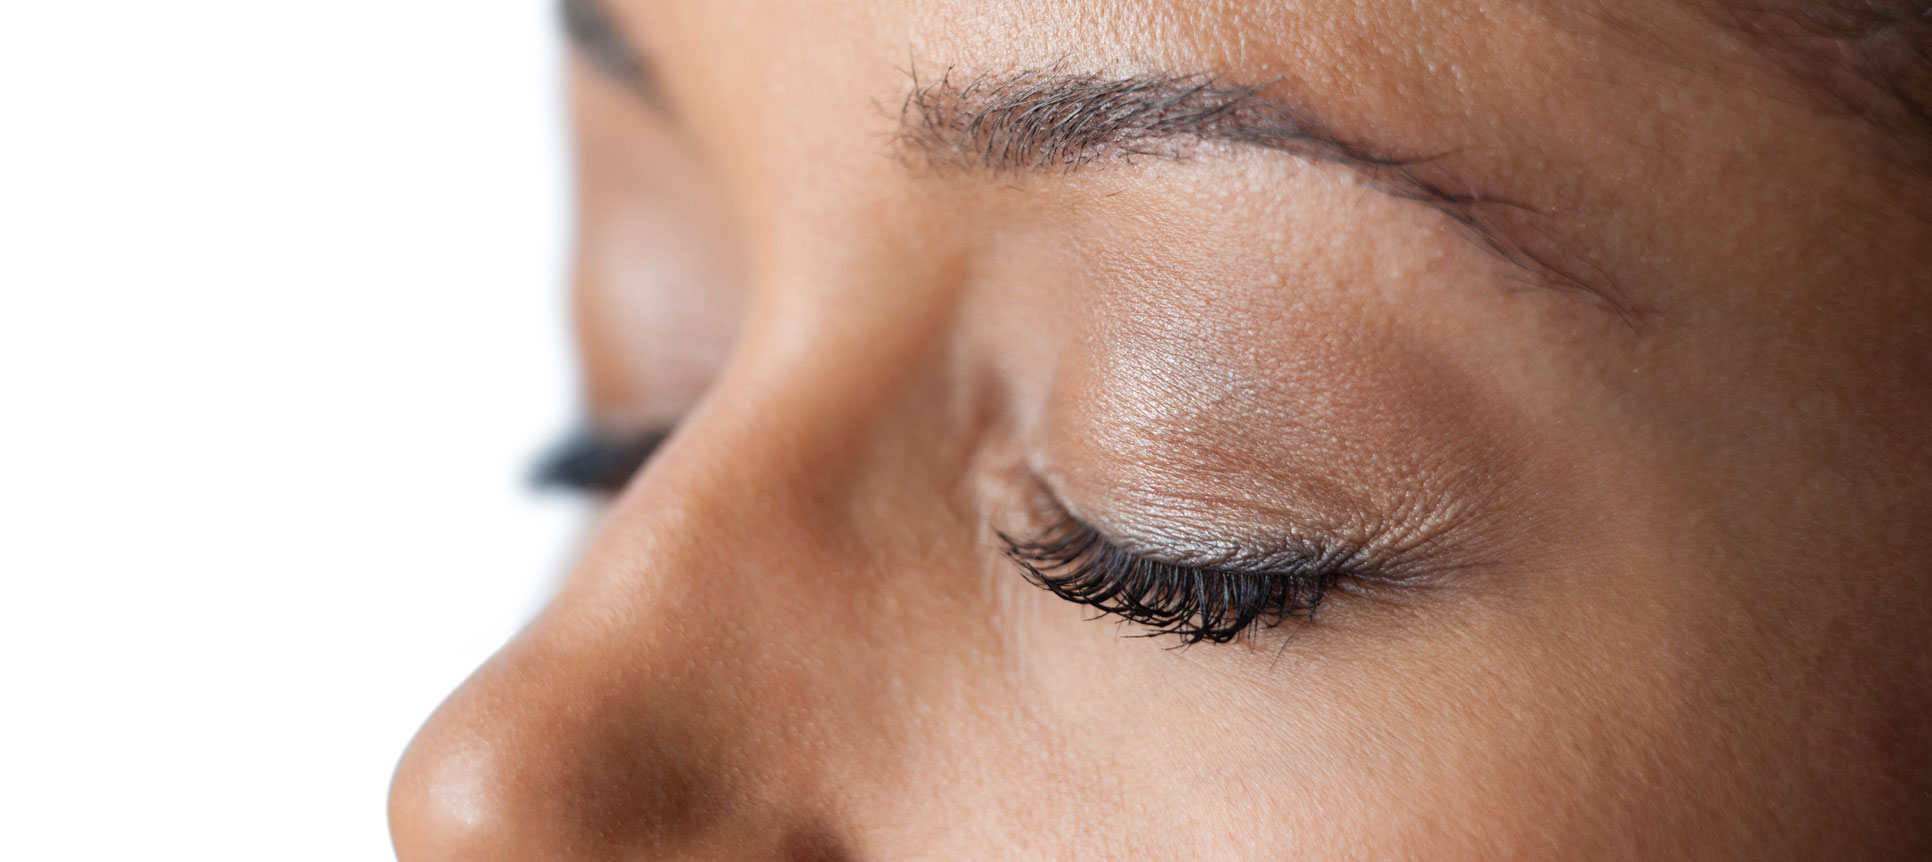 You Should Consider These 11 Facts Before Getting Your Blepharoplasty